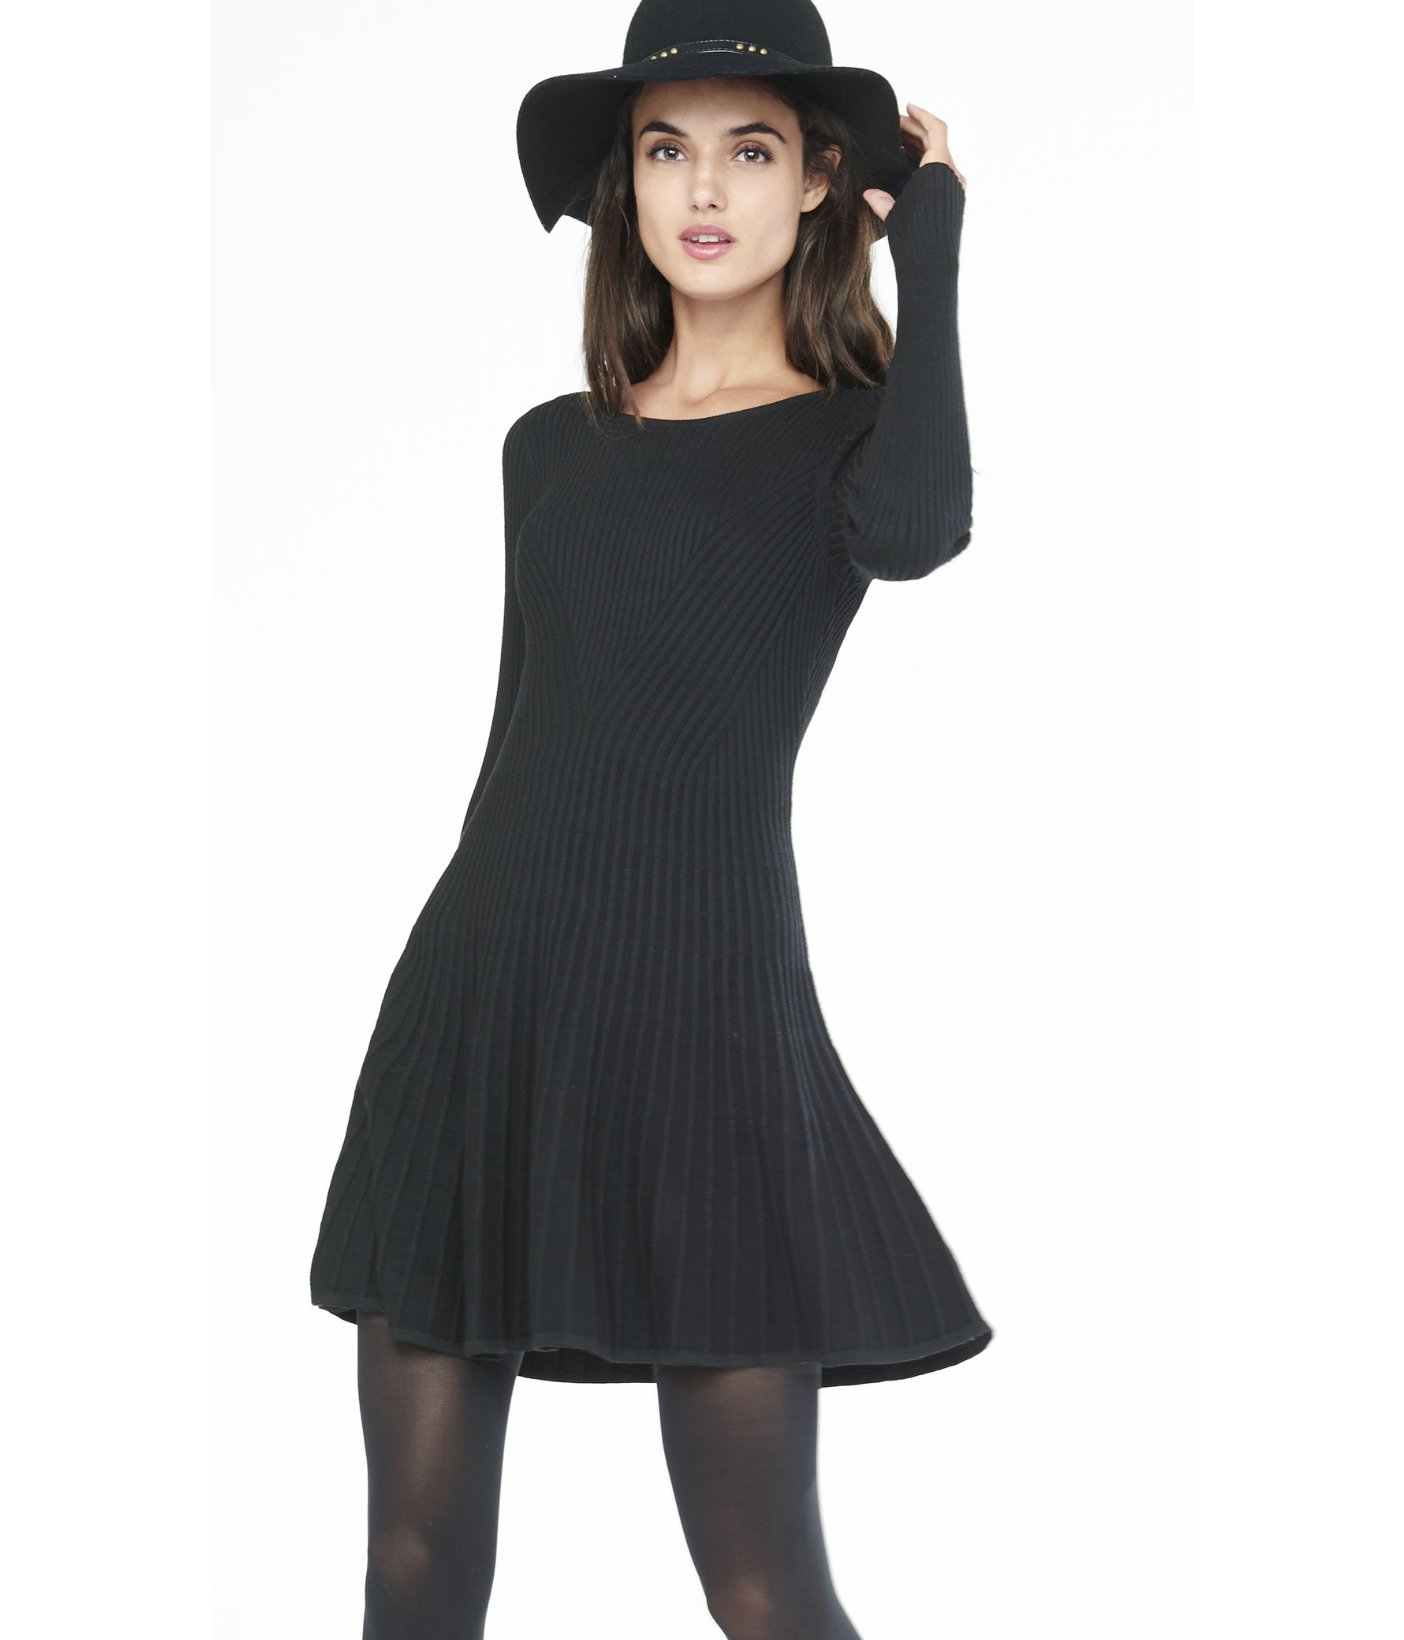 c291bf258195 Express Black Ribbed Fit And Flare Sweater Dress in Black - Lyst